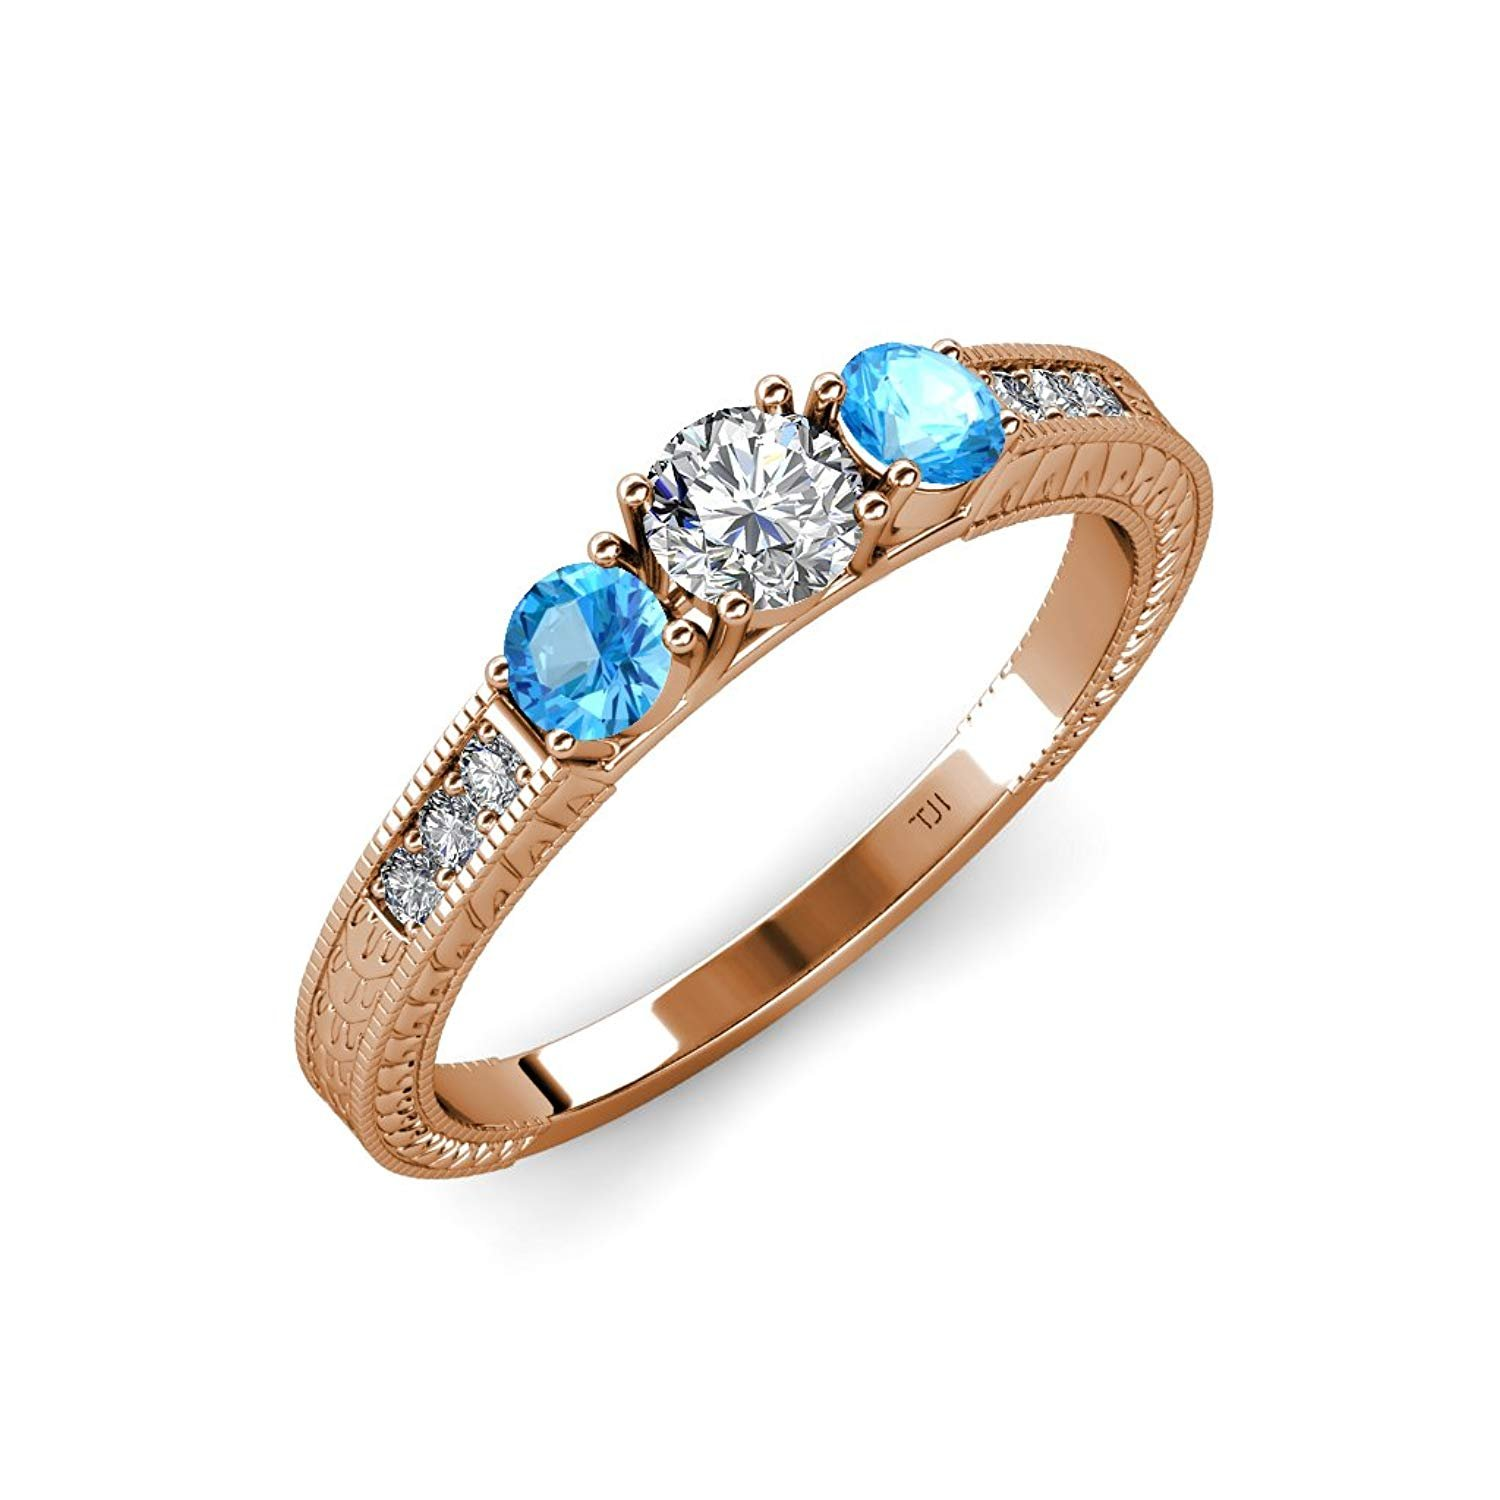 Diamond and Blue Topaz Milgrain Work 3 Stone Ring with Side Diamond 0.85 ct tw 14K Rose Gold.size 5.5 by TriJewels